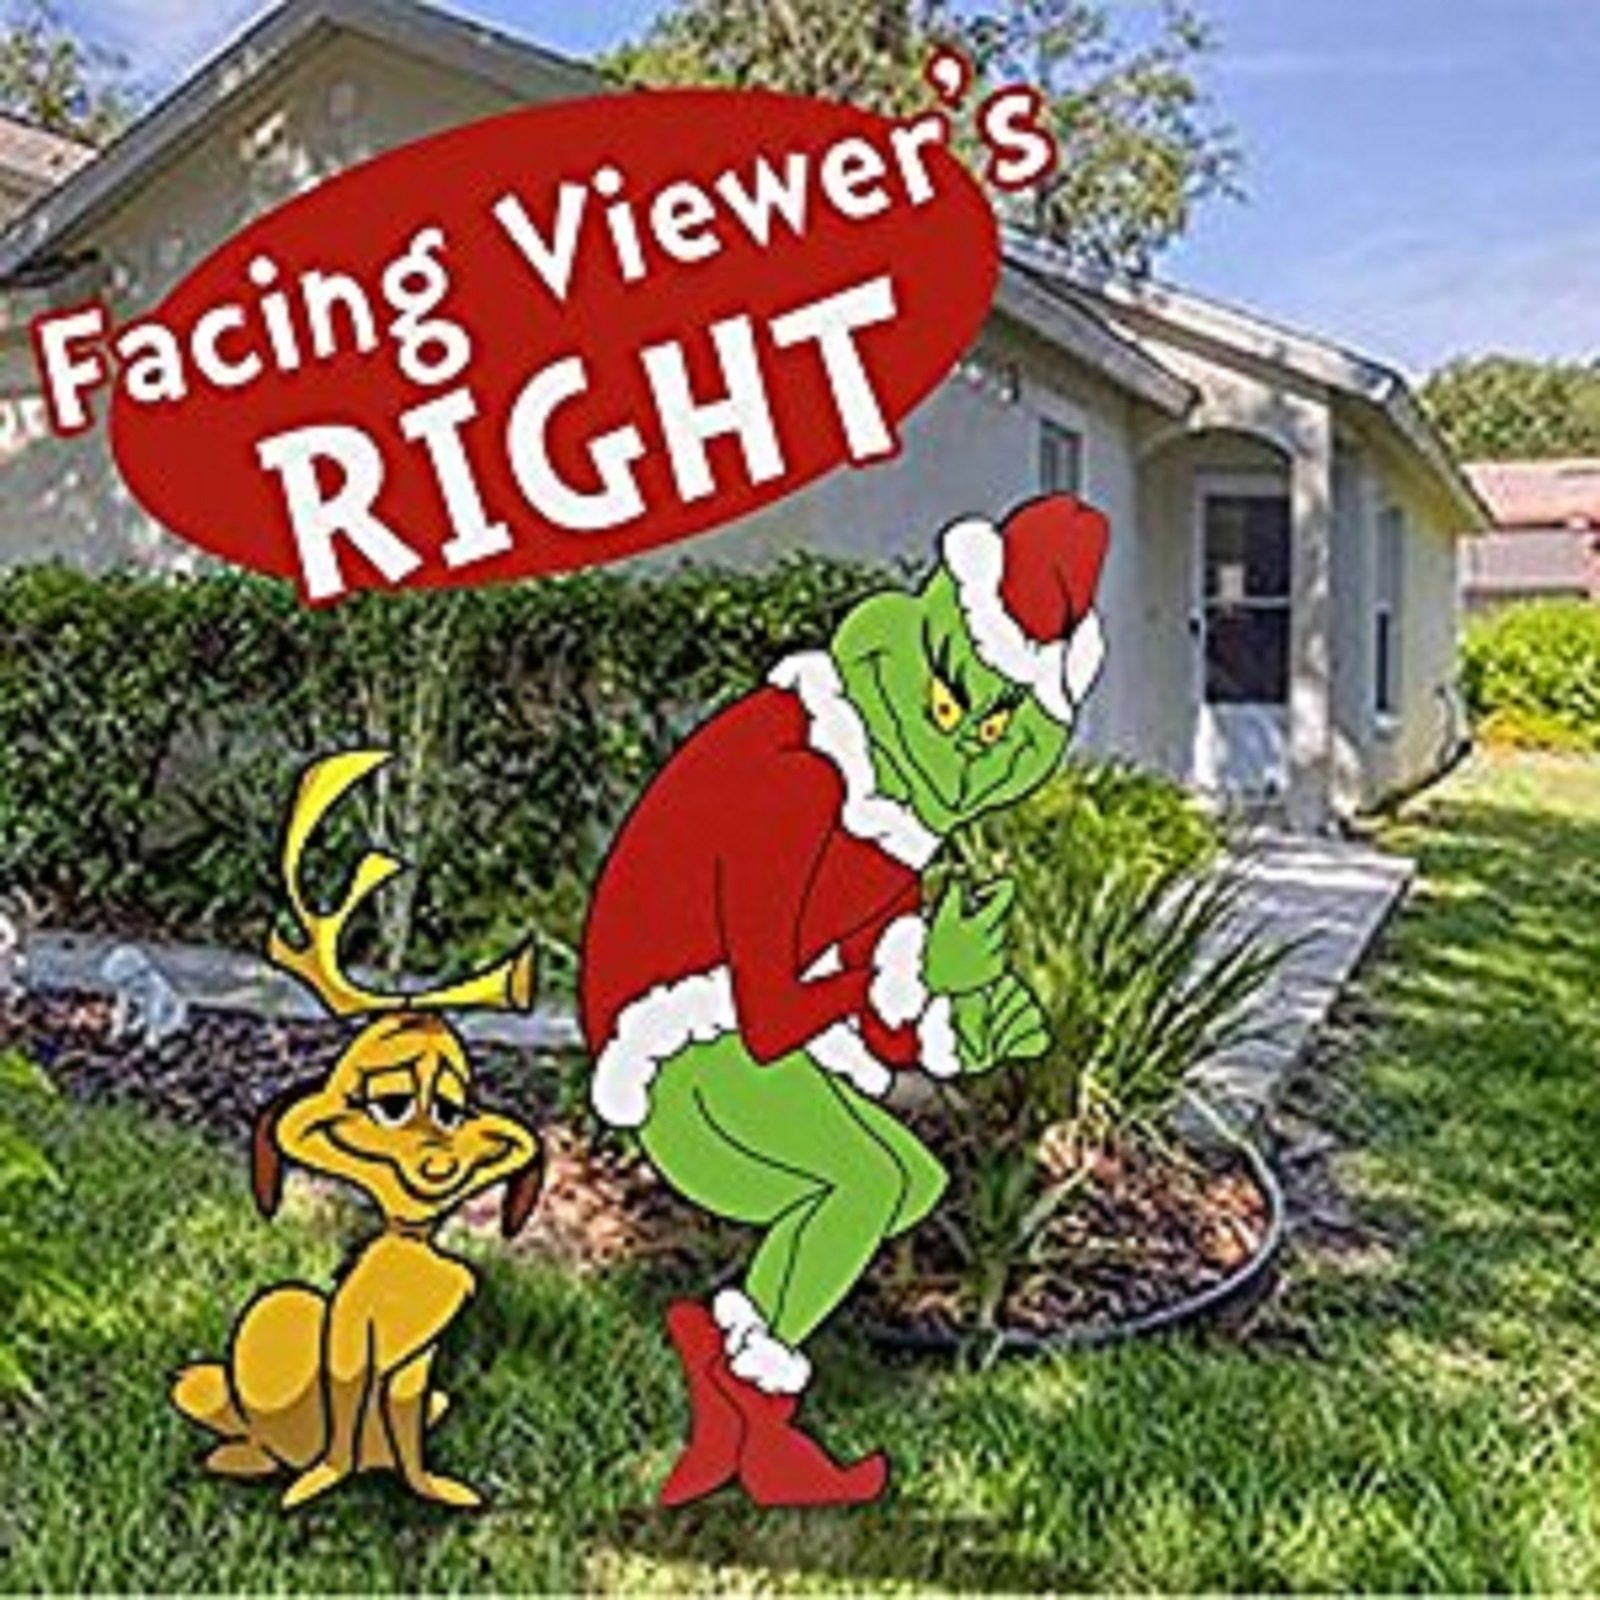 Grinch Stealing Christmas Lights Facing Right + Max by GGS